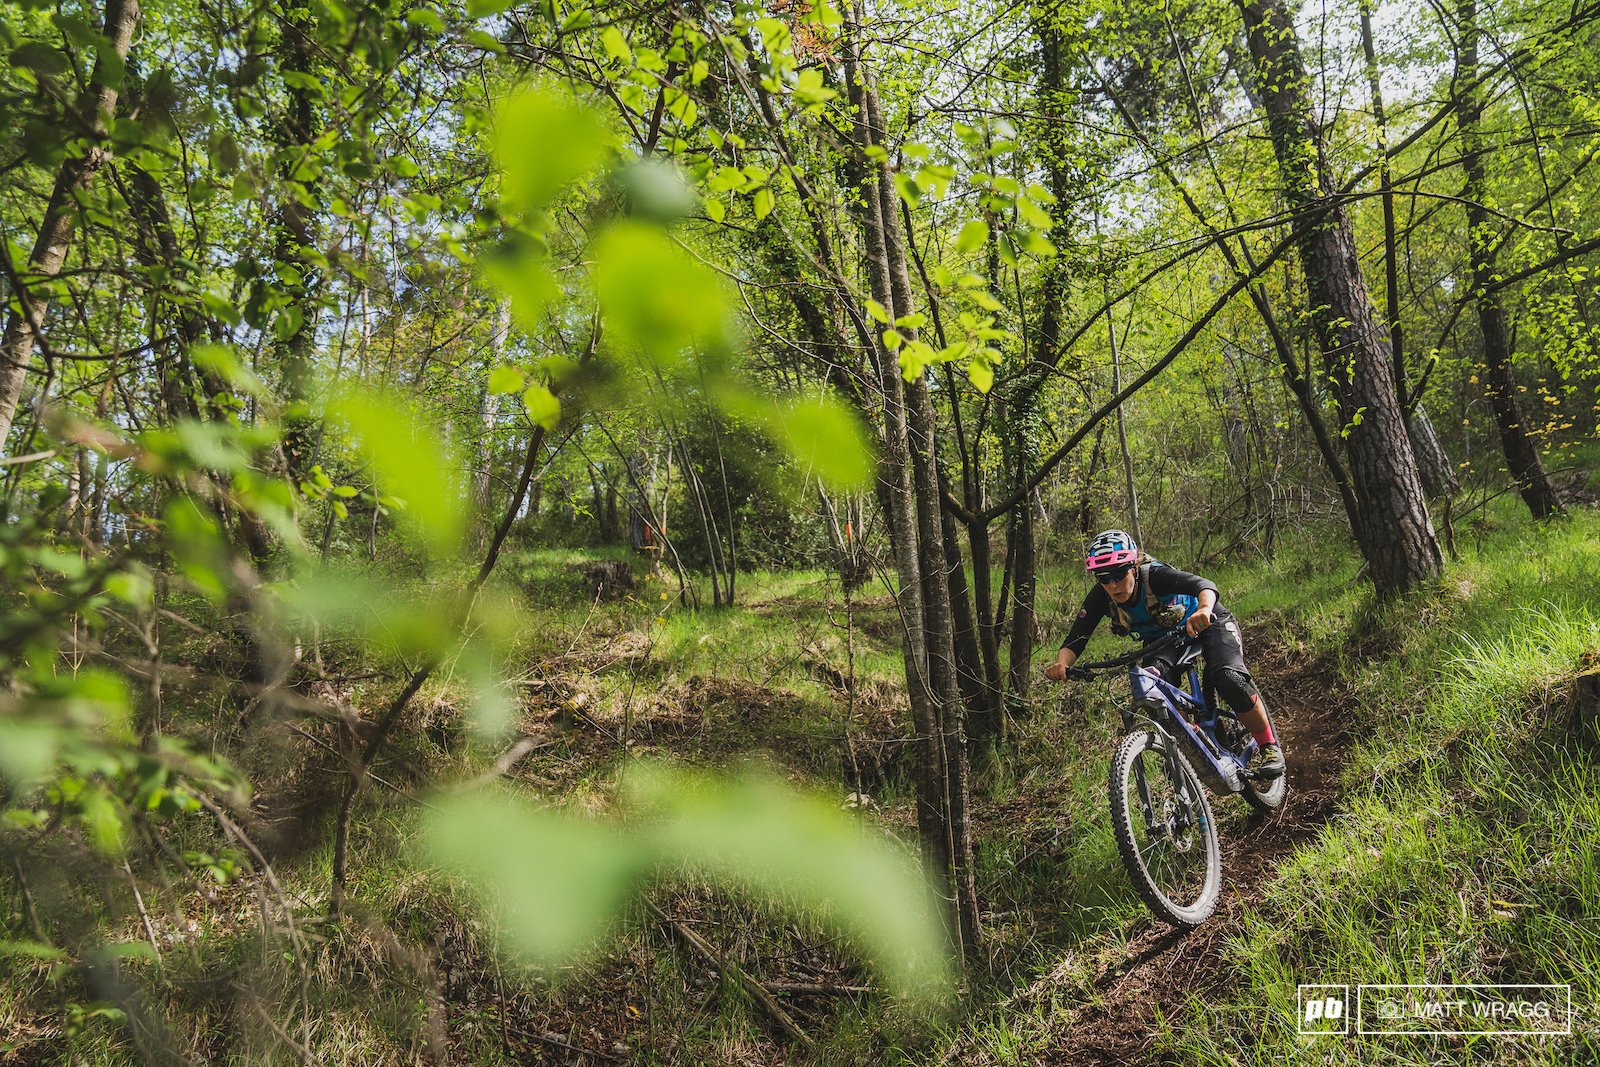 Serpentin is very different to almost every other trail in the valley - it is one of the very few that was shaped with bikes in mind.